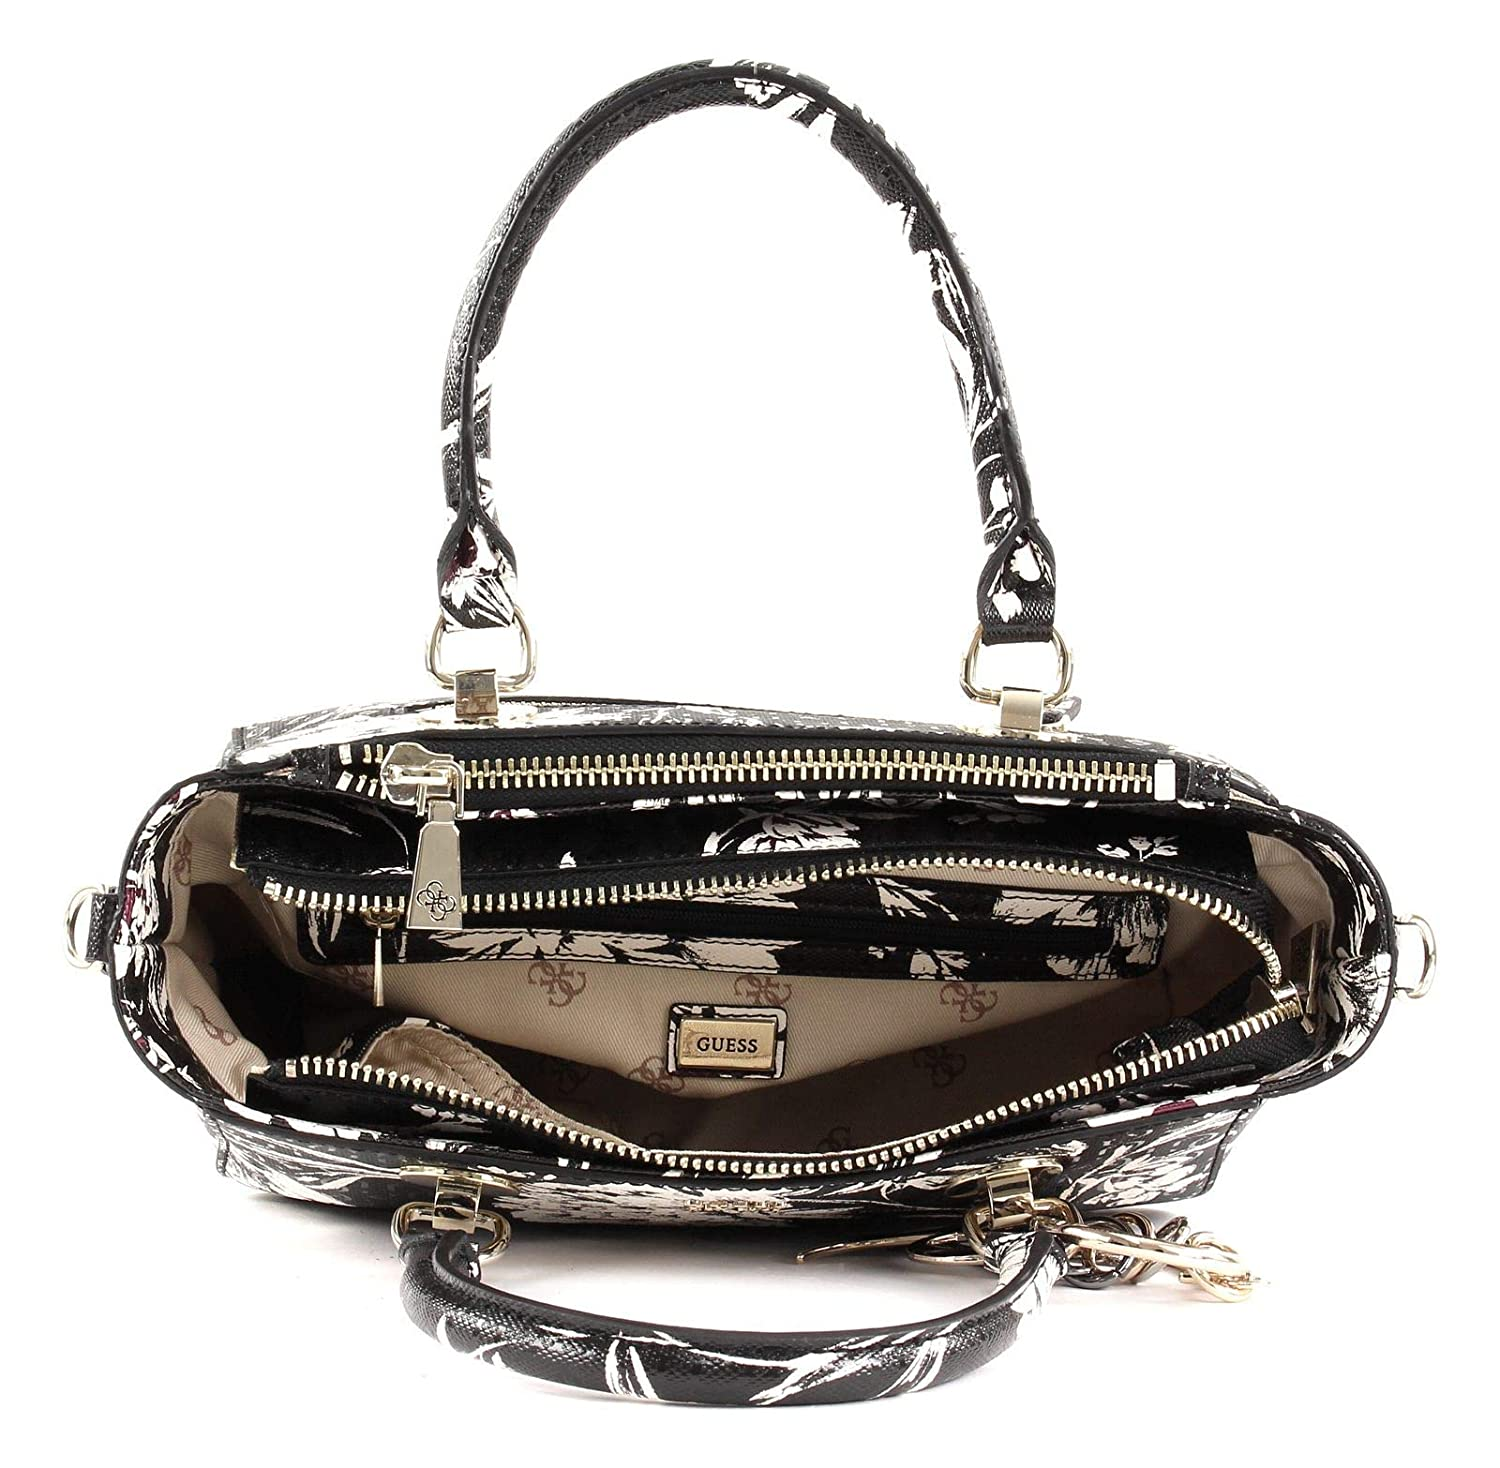 GUESS Tamra Small Society Satchel Black Floral: Amazon.co.uk